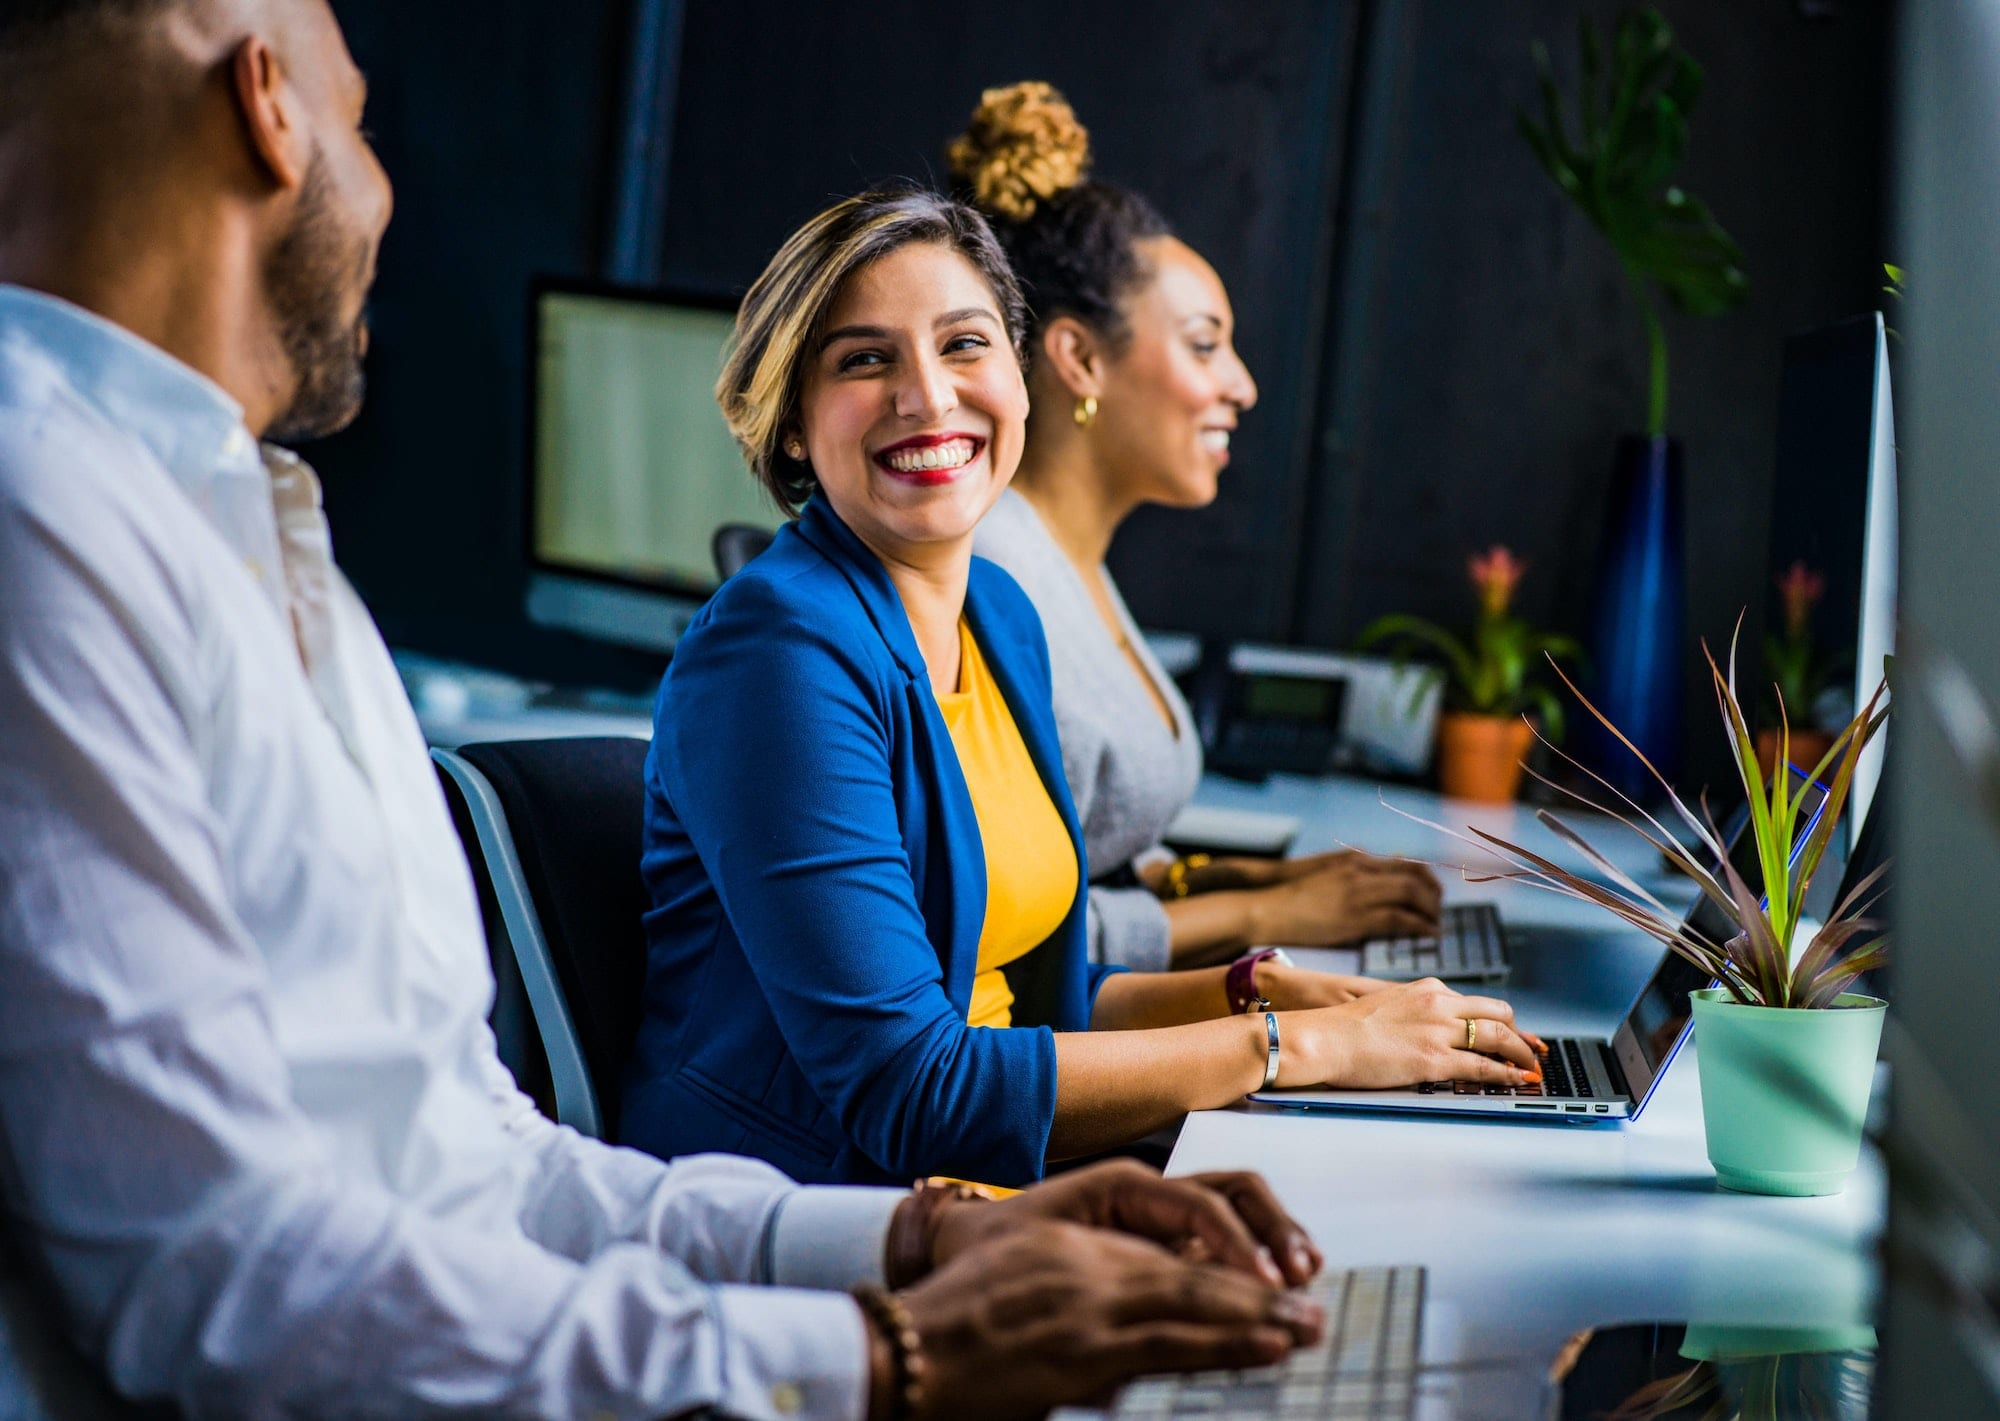 Photo of a woman sitting in front of a computer and smiling at her coworkers